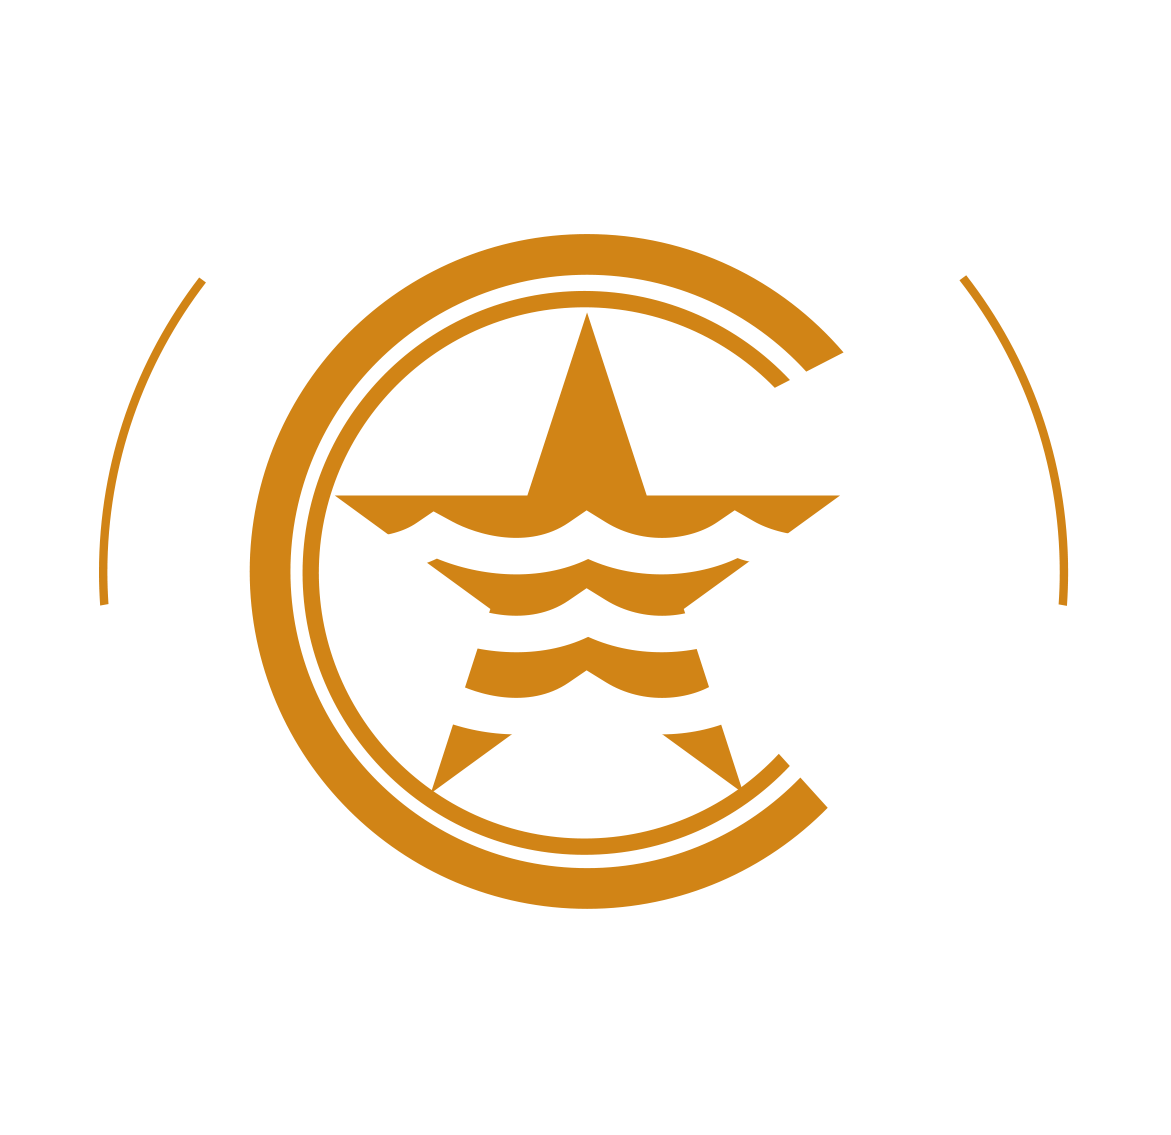 cordillera-river-club